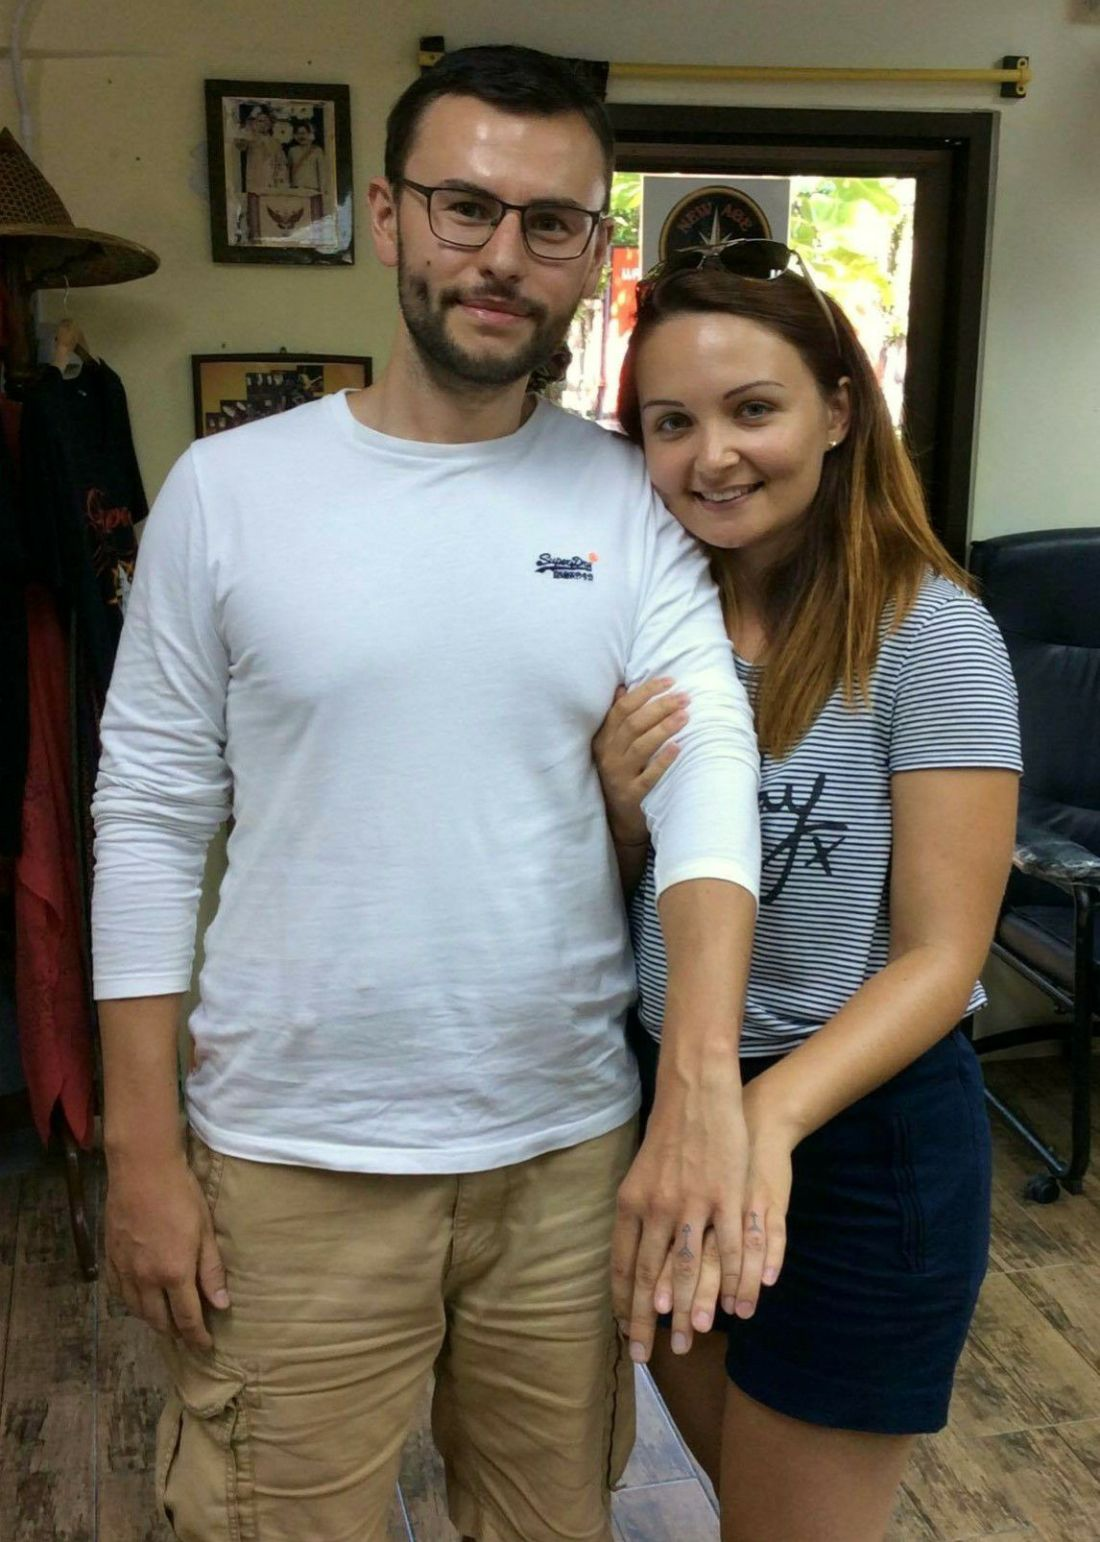 When we got our tattoo wedding rings done